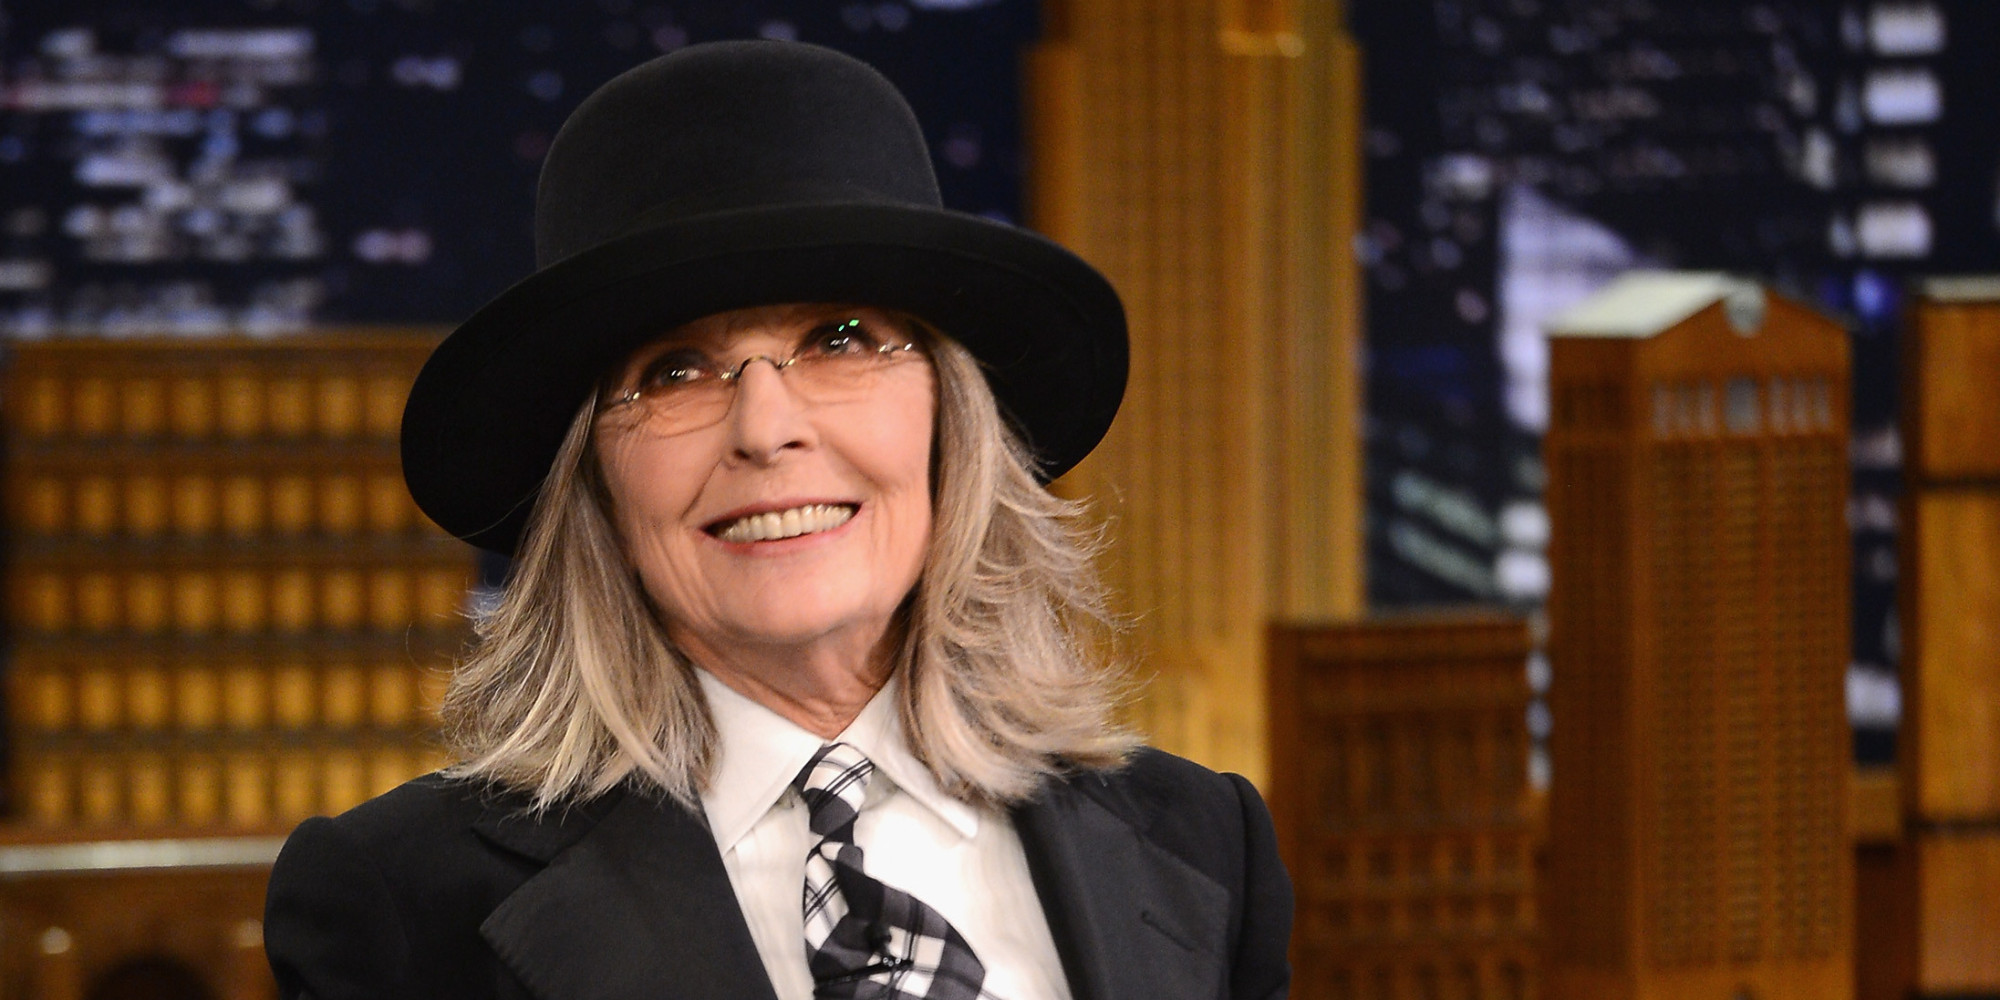 diane keaton manhattandiane keaton young, diane keaton young pope, diane keaton 2016, diane keaton wiki, diane keaton woody allen, diane keaton фильмы, diane keaton keanu reeves, diane keaton michael keaton, diane keaton manhattan, diane keaton 2017, diane keaton net worth, diane keaton vogue, diane keaton tumblr, diane keaton twin peaks director, diane keaton heaven, diane keaton zimbio, diane keaton and keanu reeves relationship, diane keaton sings, diane keaton photos, diane keaton father